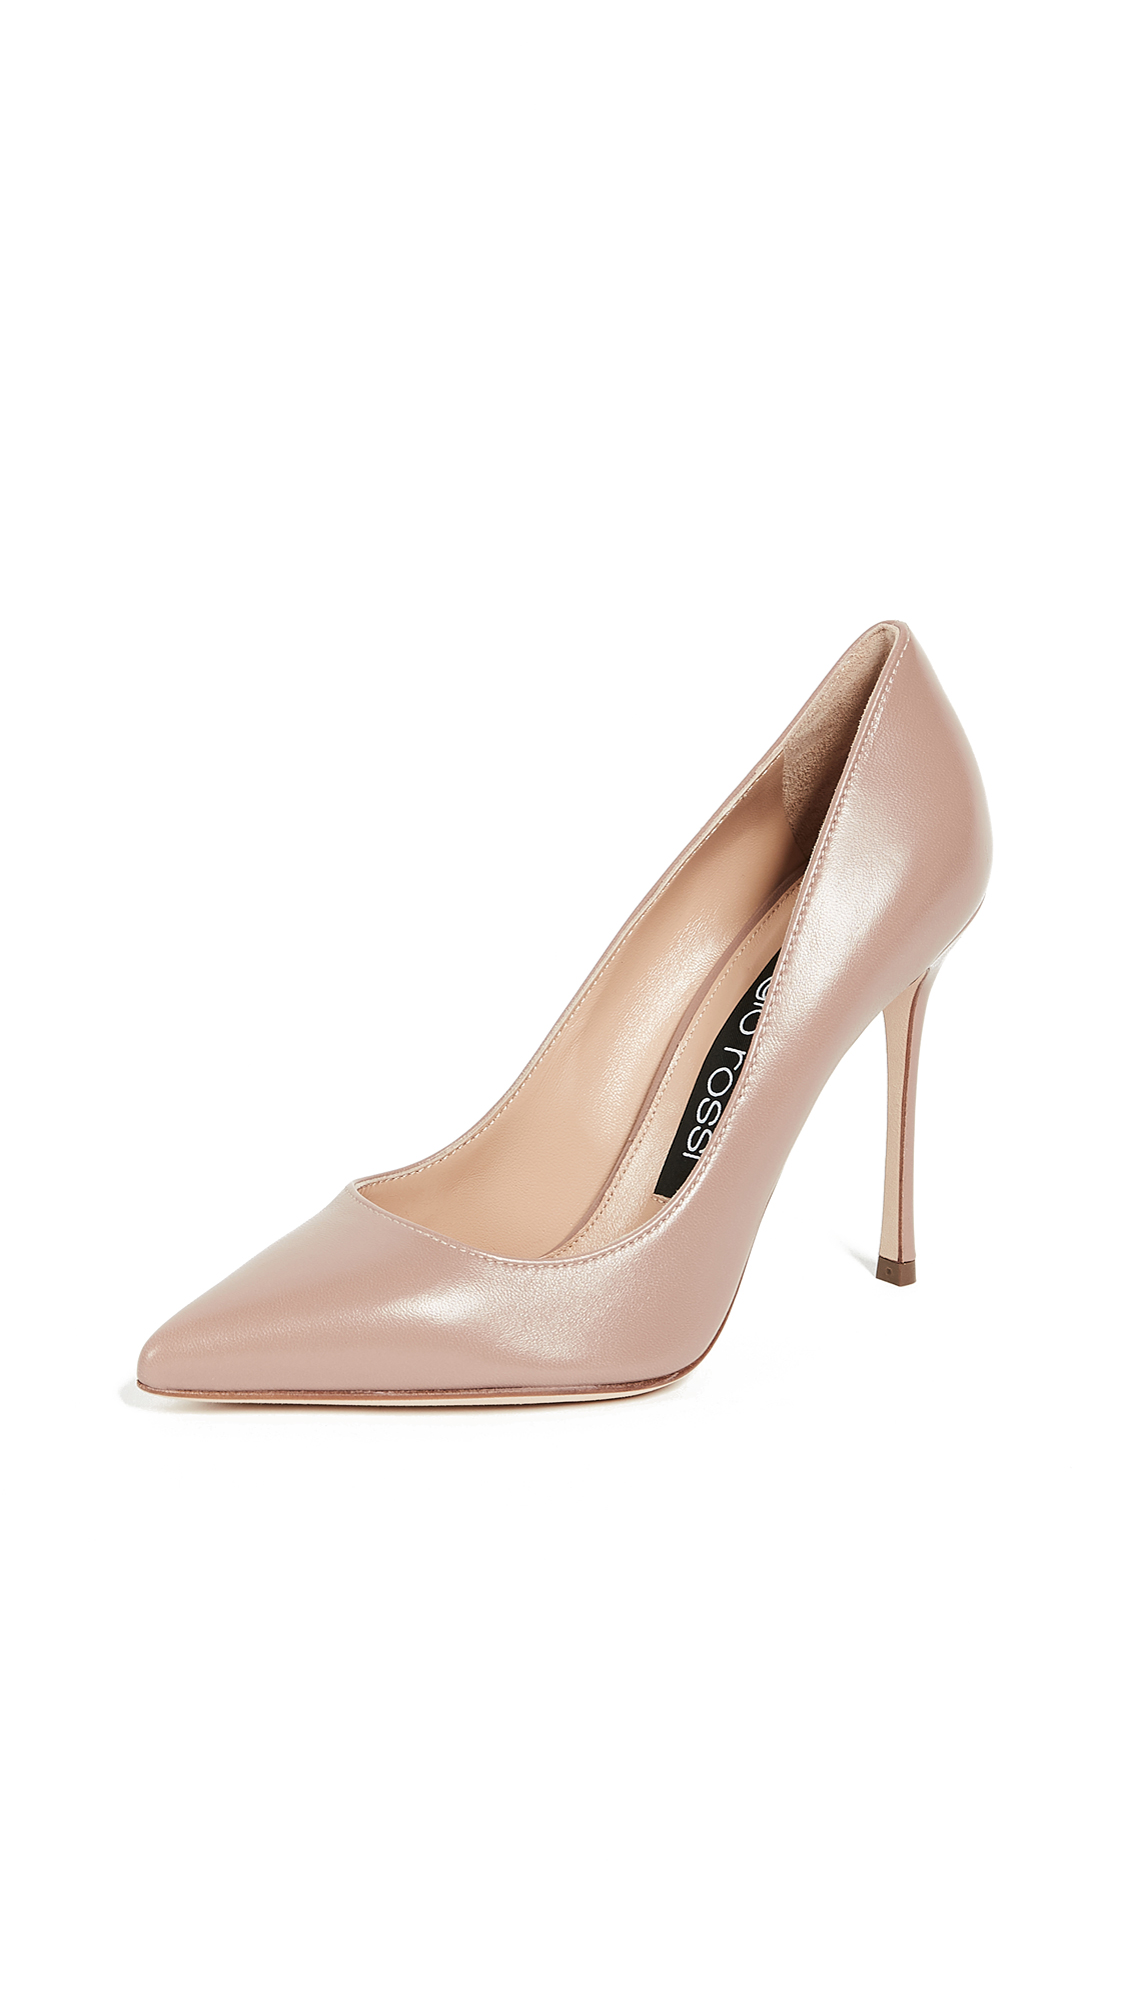 Sergio Rossi Scarpe Donna Pumps - Bright Skin